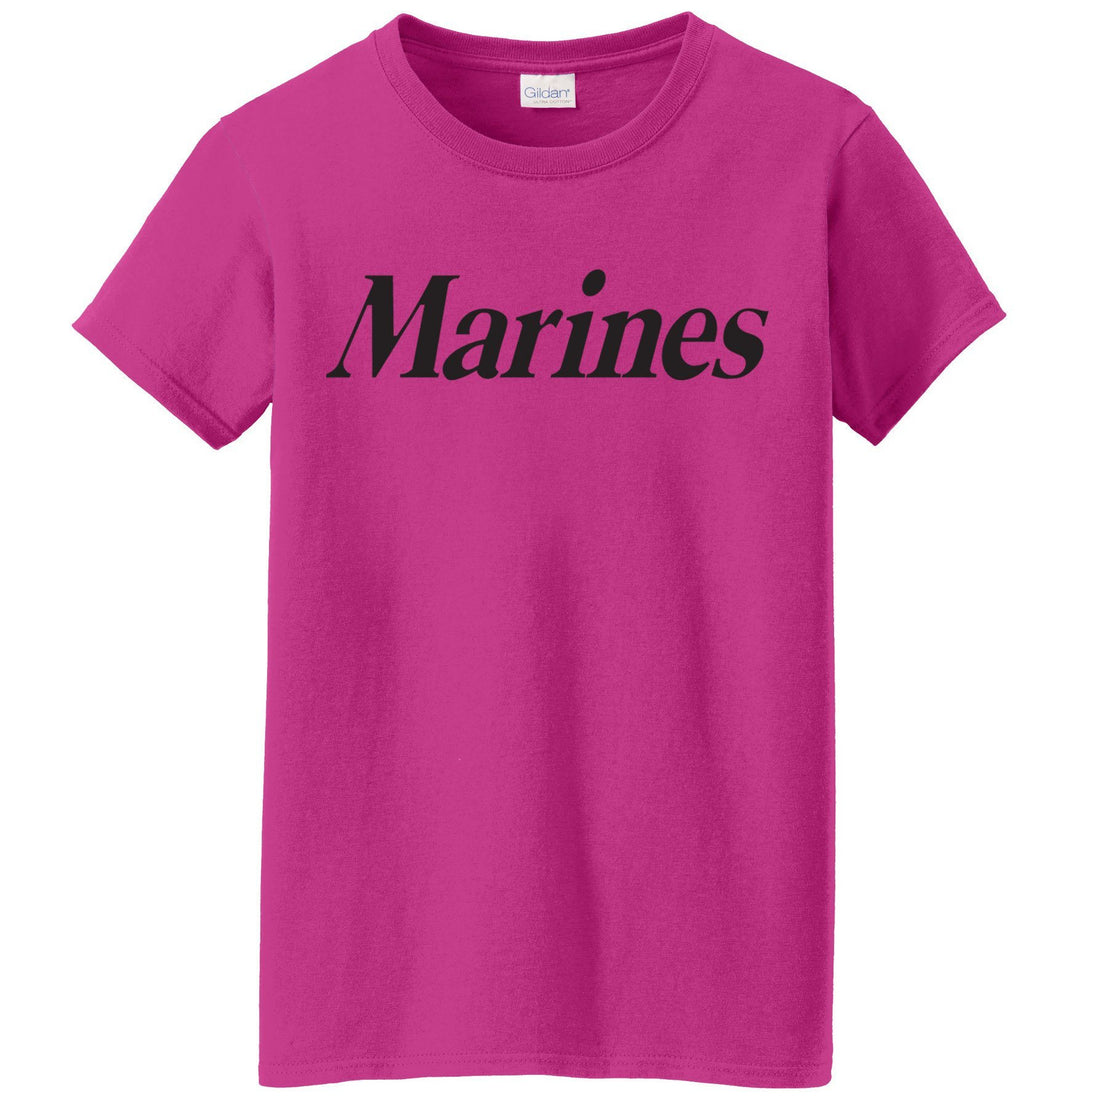 Women's USMC clothing by Marine Corps Direct called Marines Women's T-Shirt